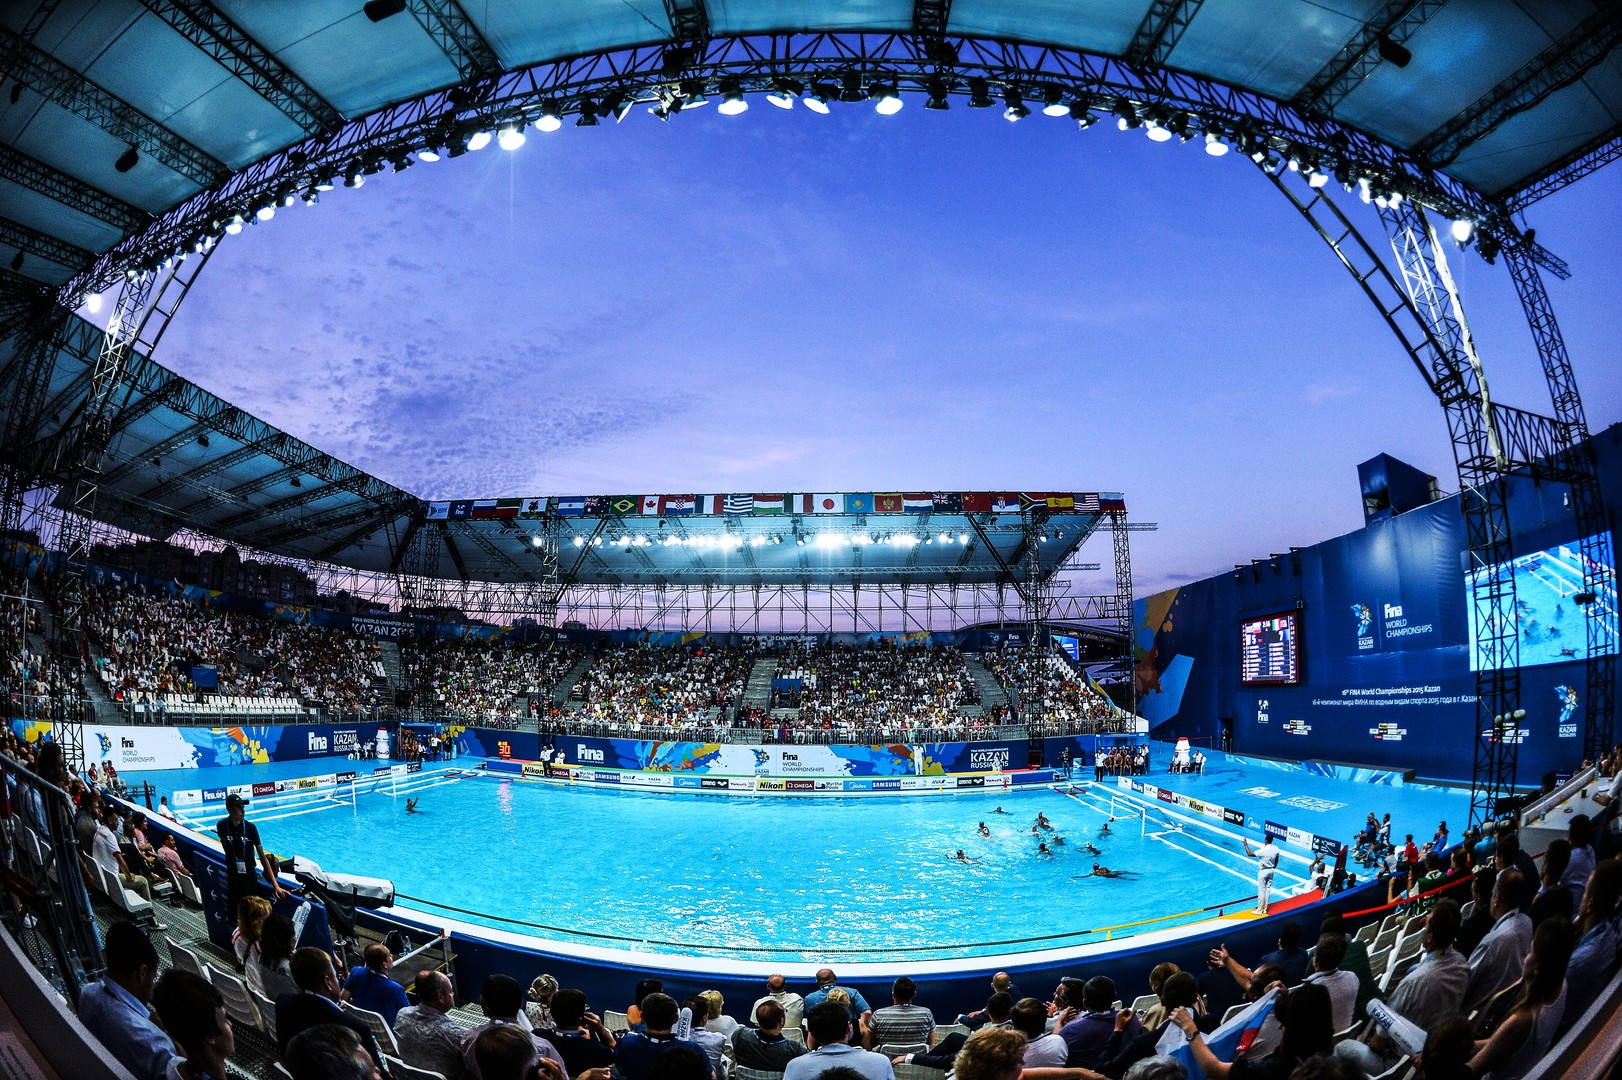 Vue d'ensemble de l'enceinte de water-polo